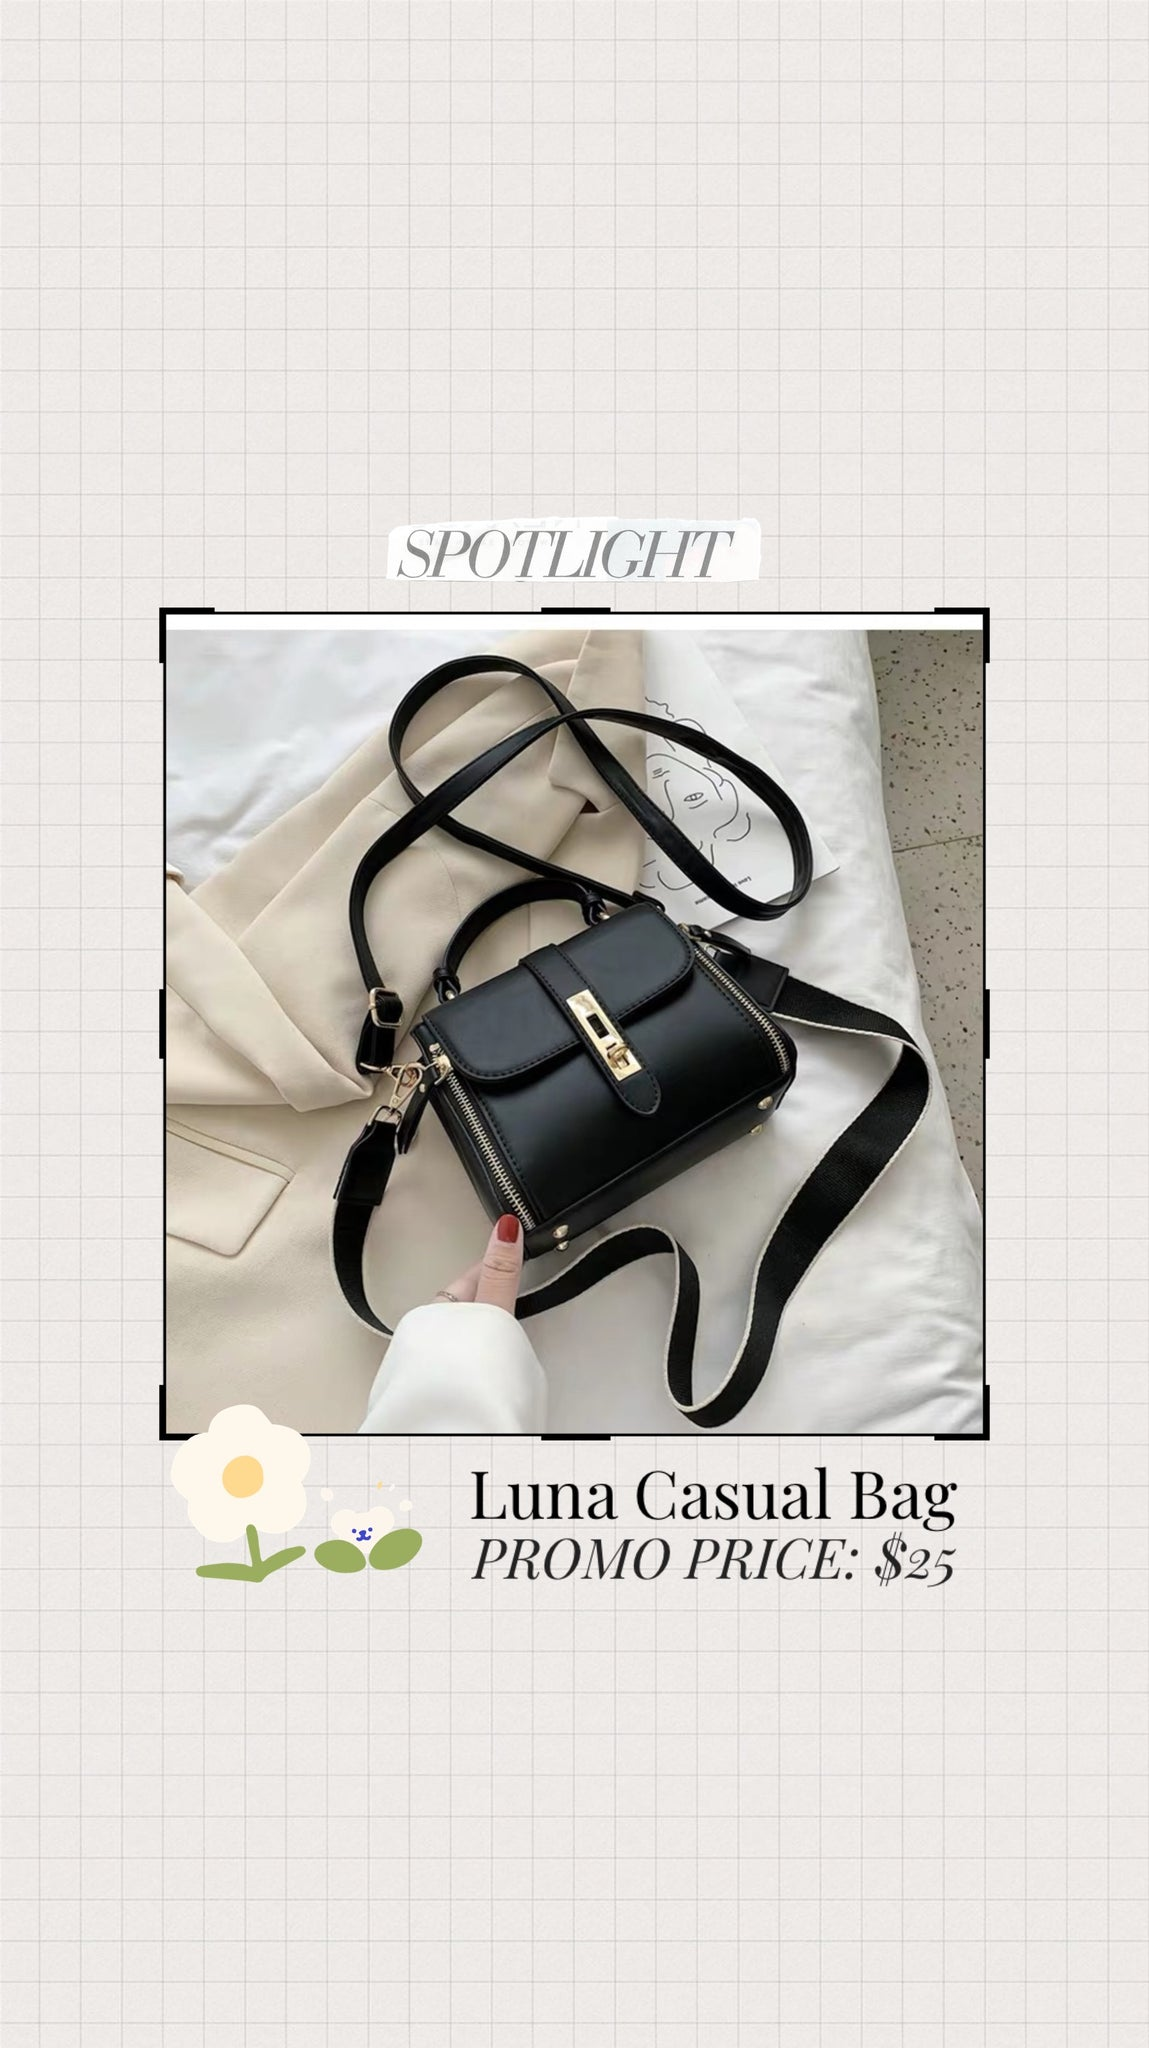 Luna Casual Bag